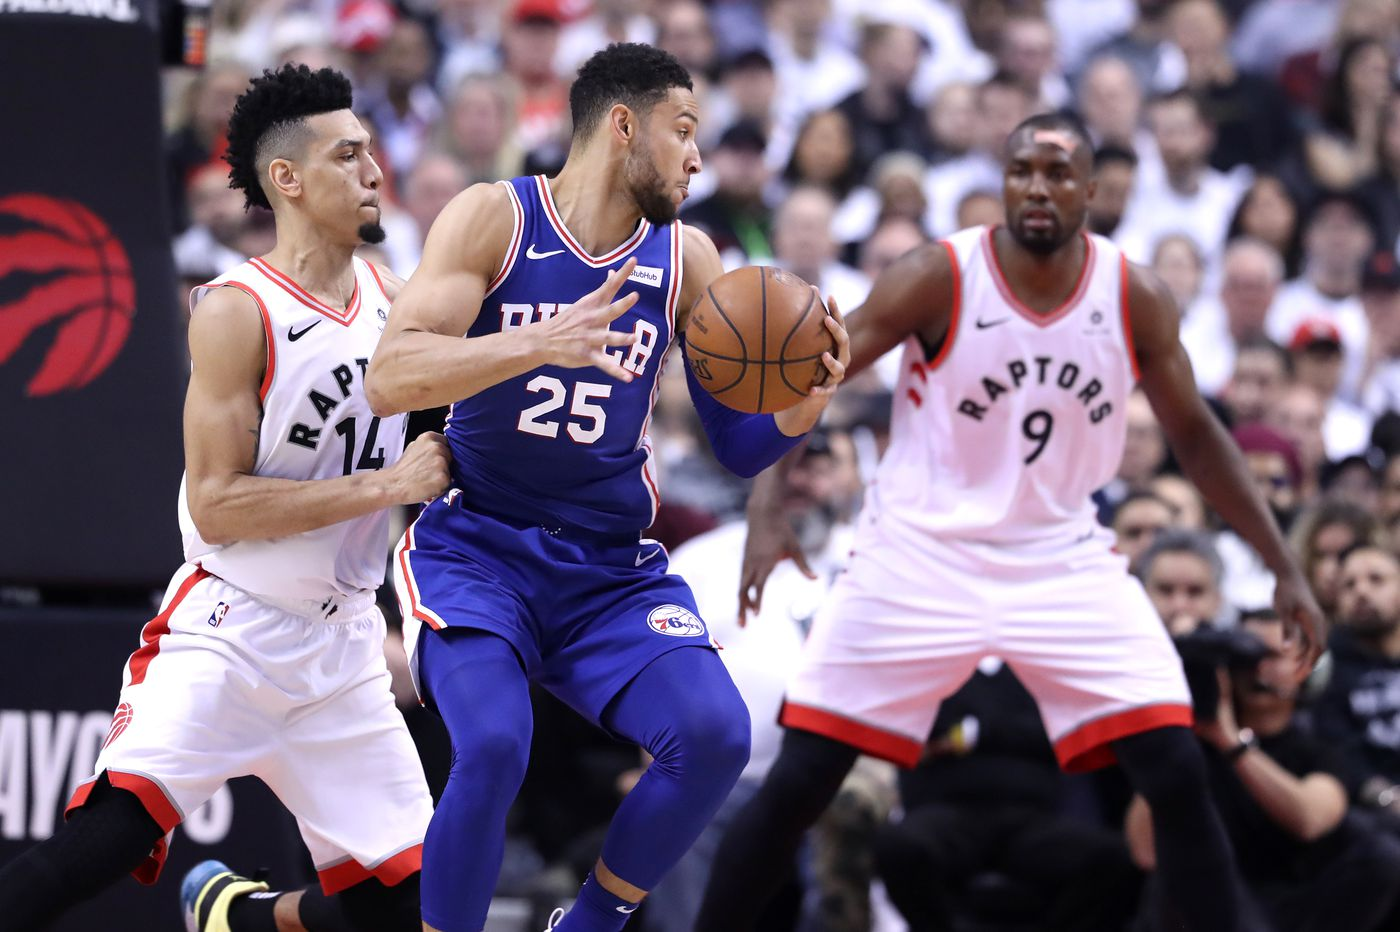 Toronto Raptors vs. Philadelphia 76ers - 5/12/19 NBA - Playoffs Pick, Odds, and Prediction